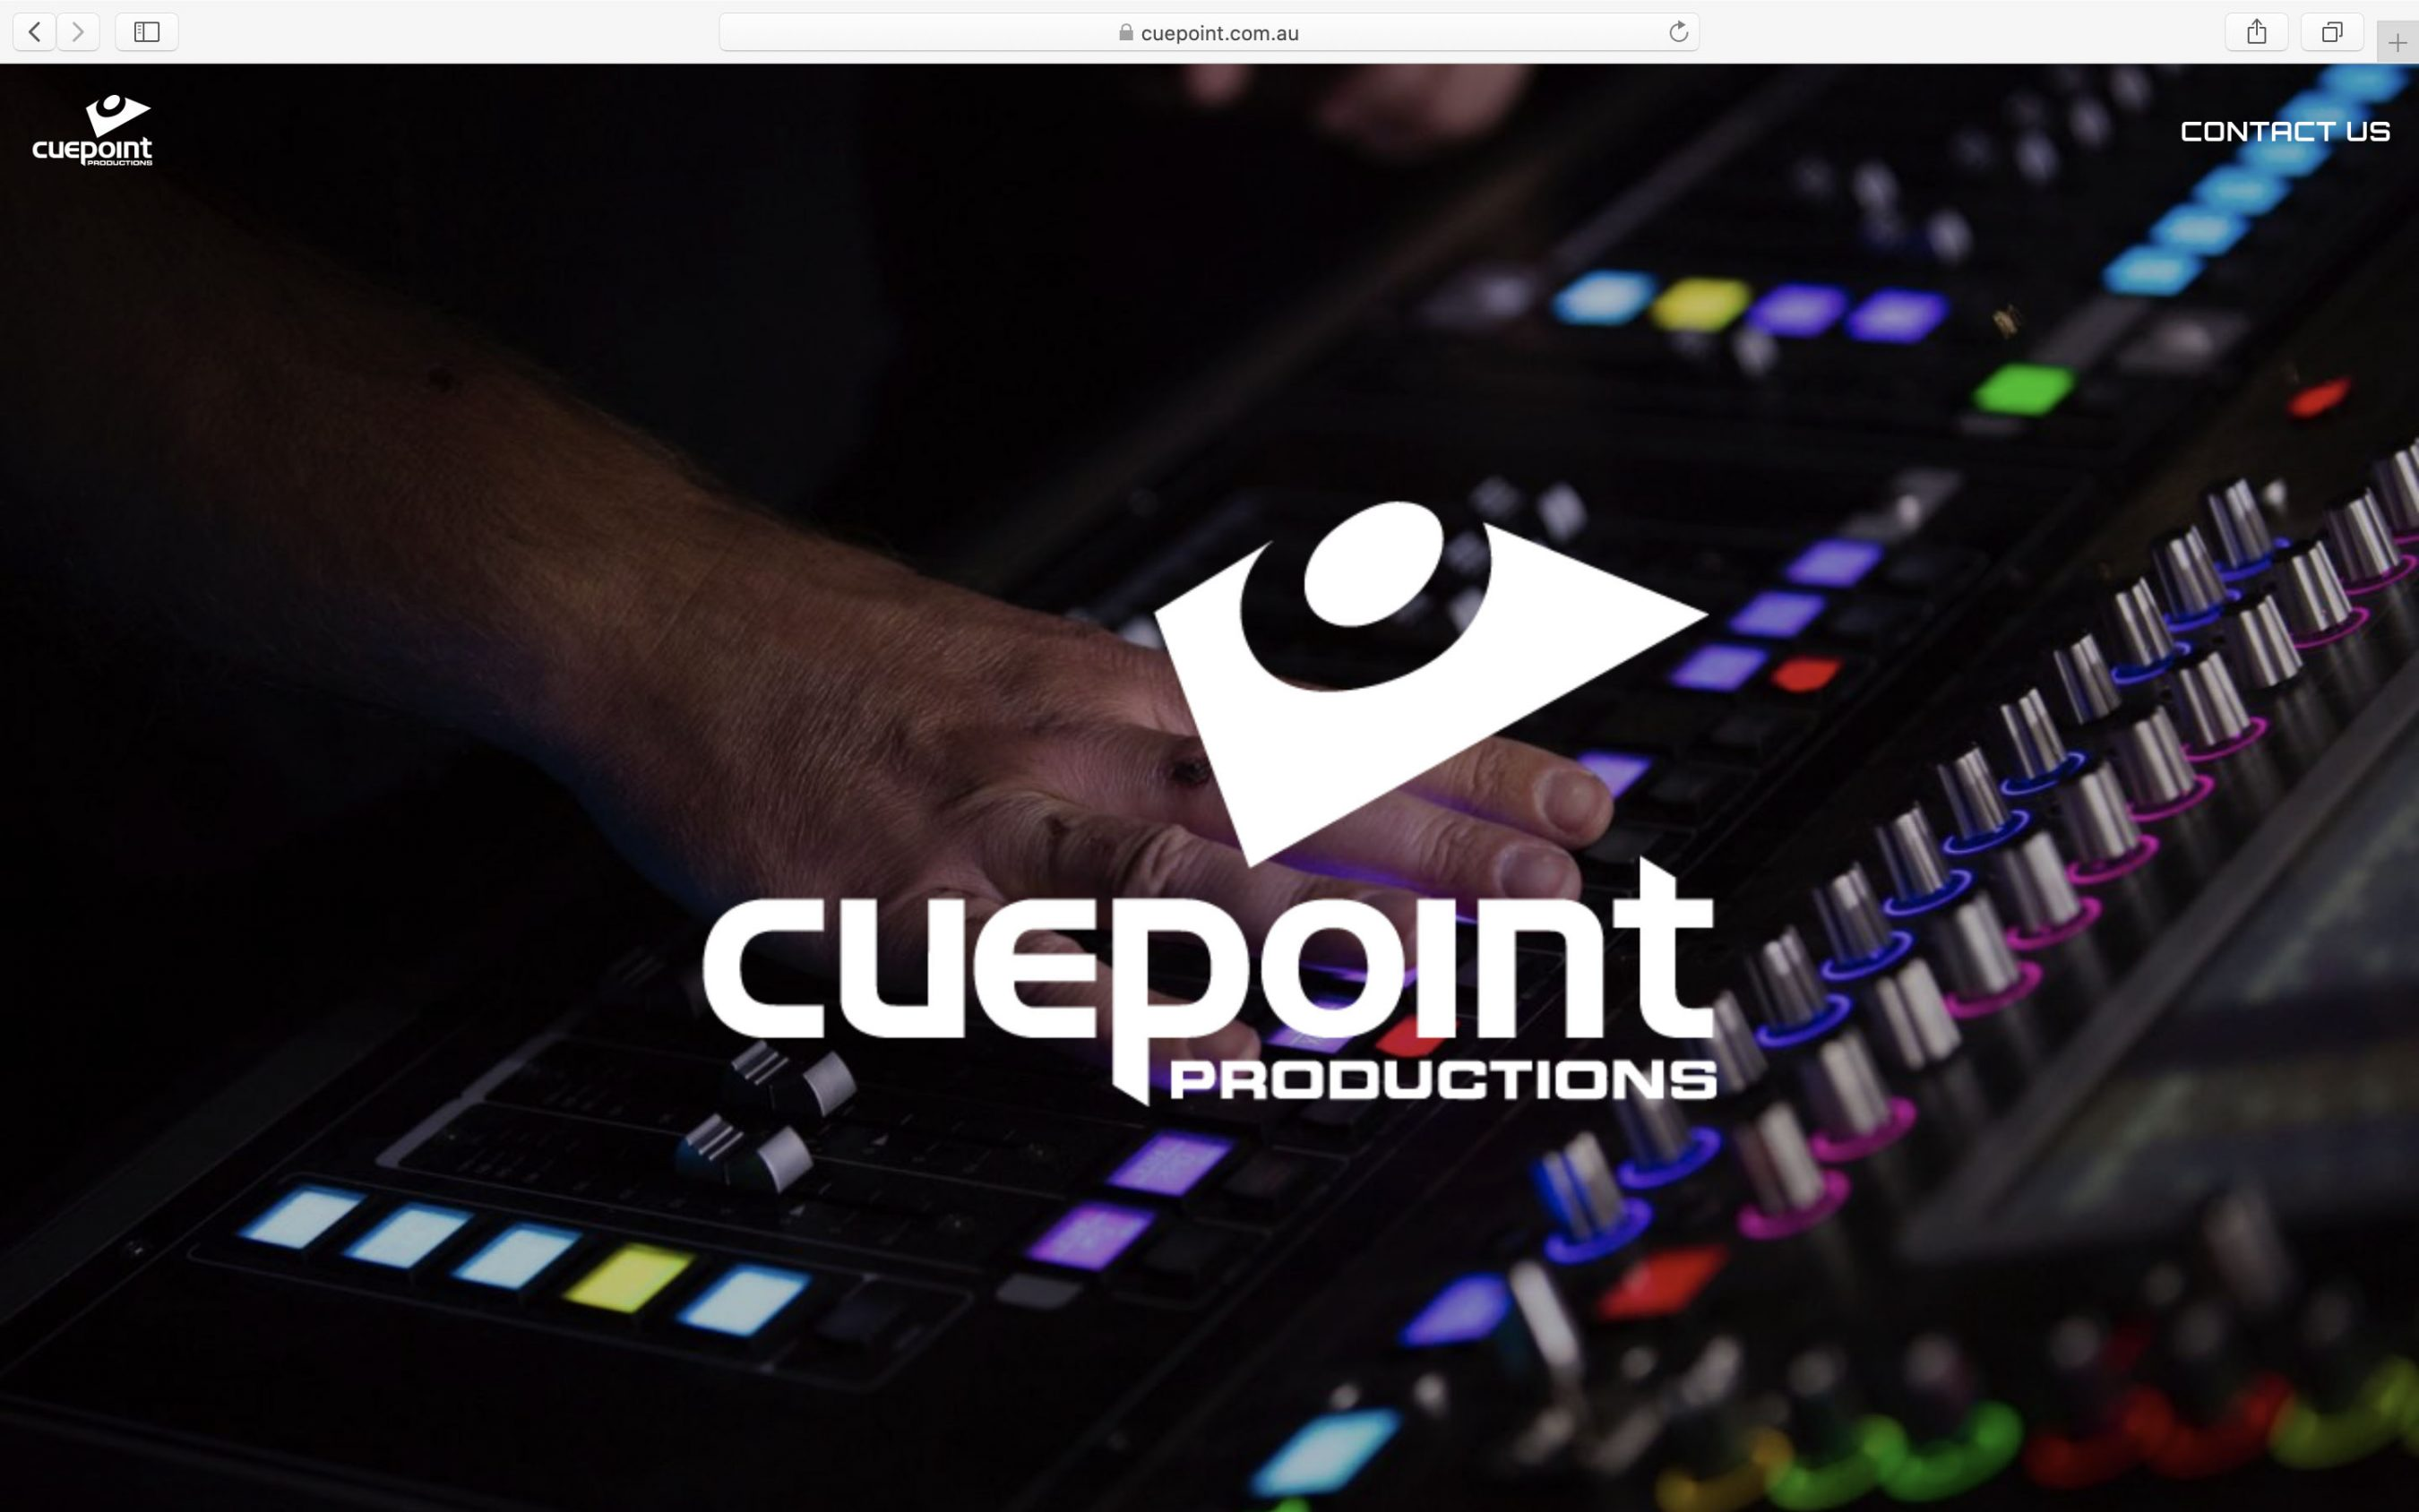 Cuepoint Productions